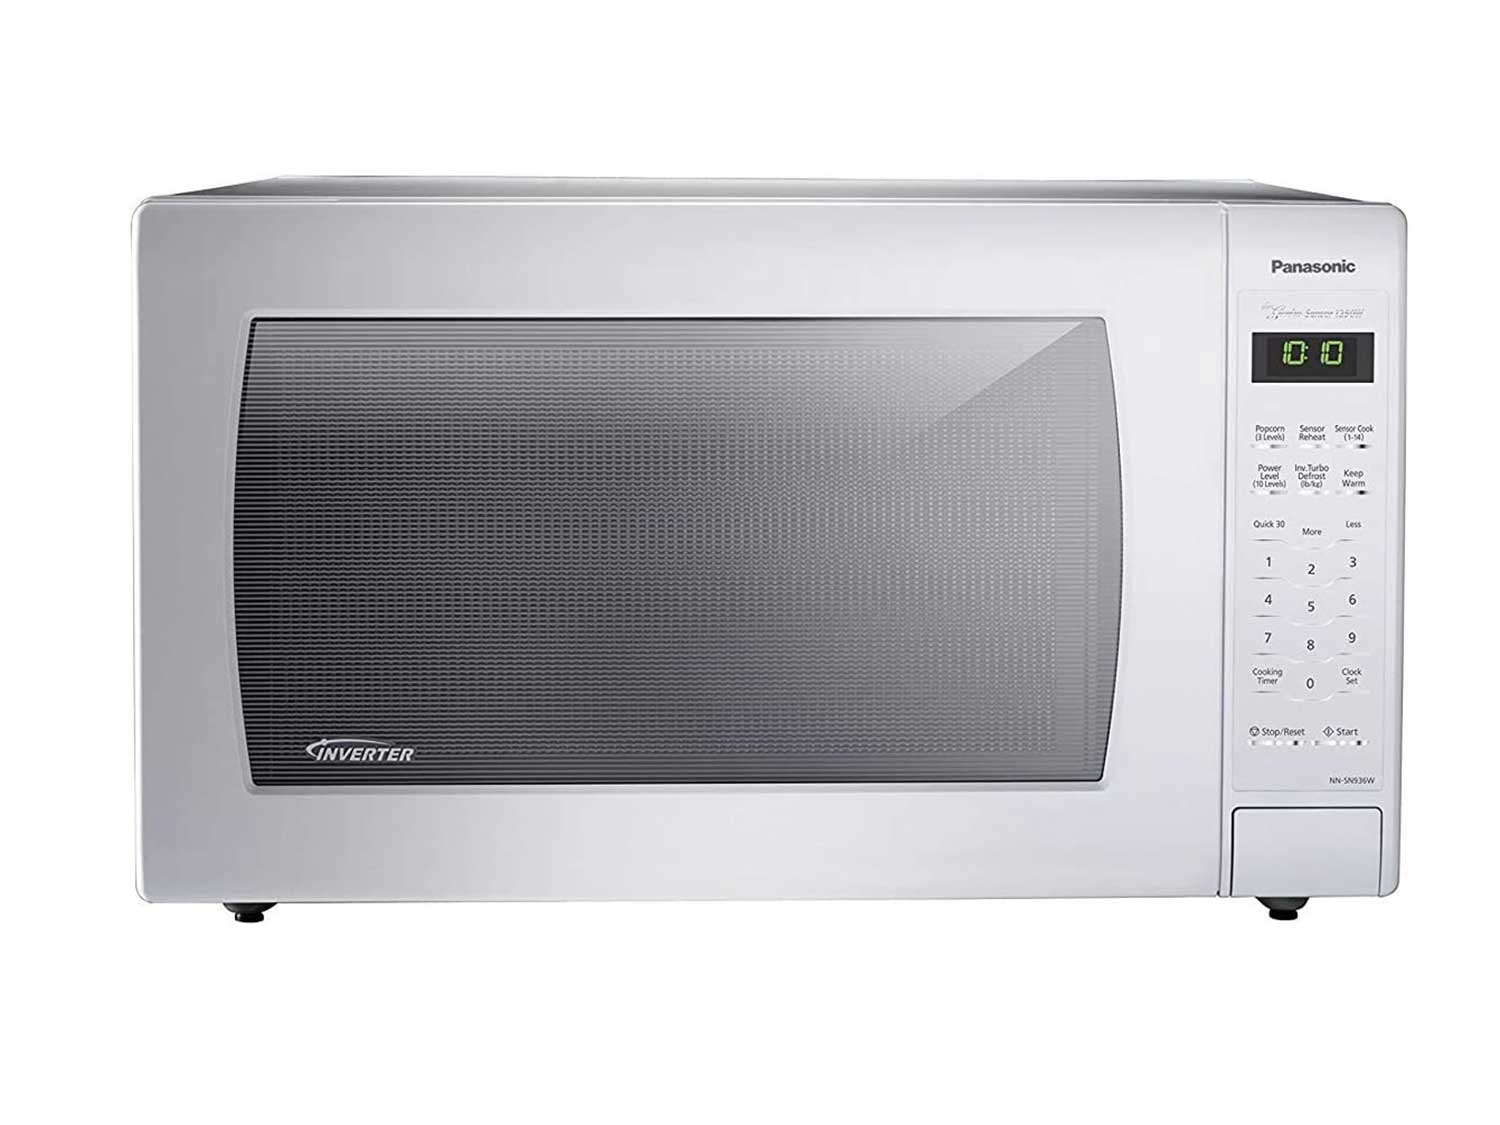 Panasonic NN-SN936W Countertop Microwave with Inverter Technology, 2.2 Cubic Foot, 1250W, White